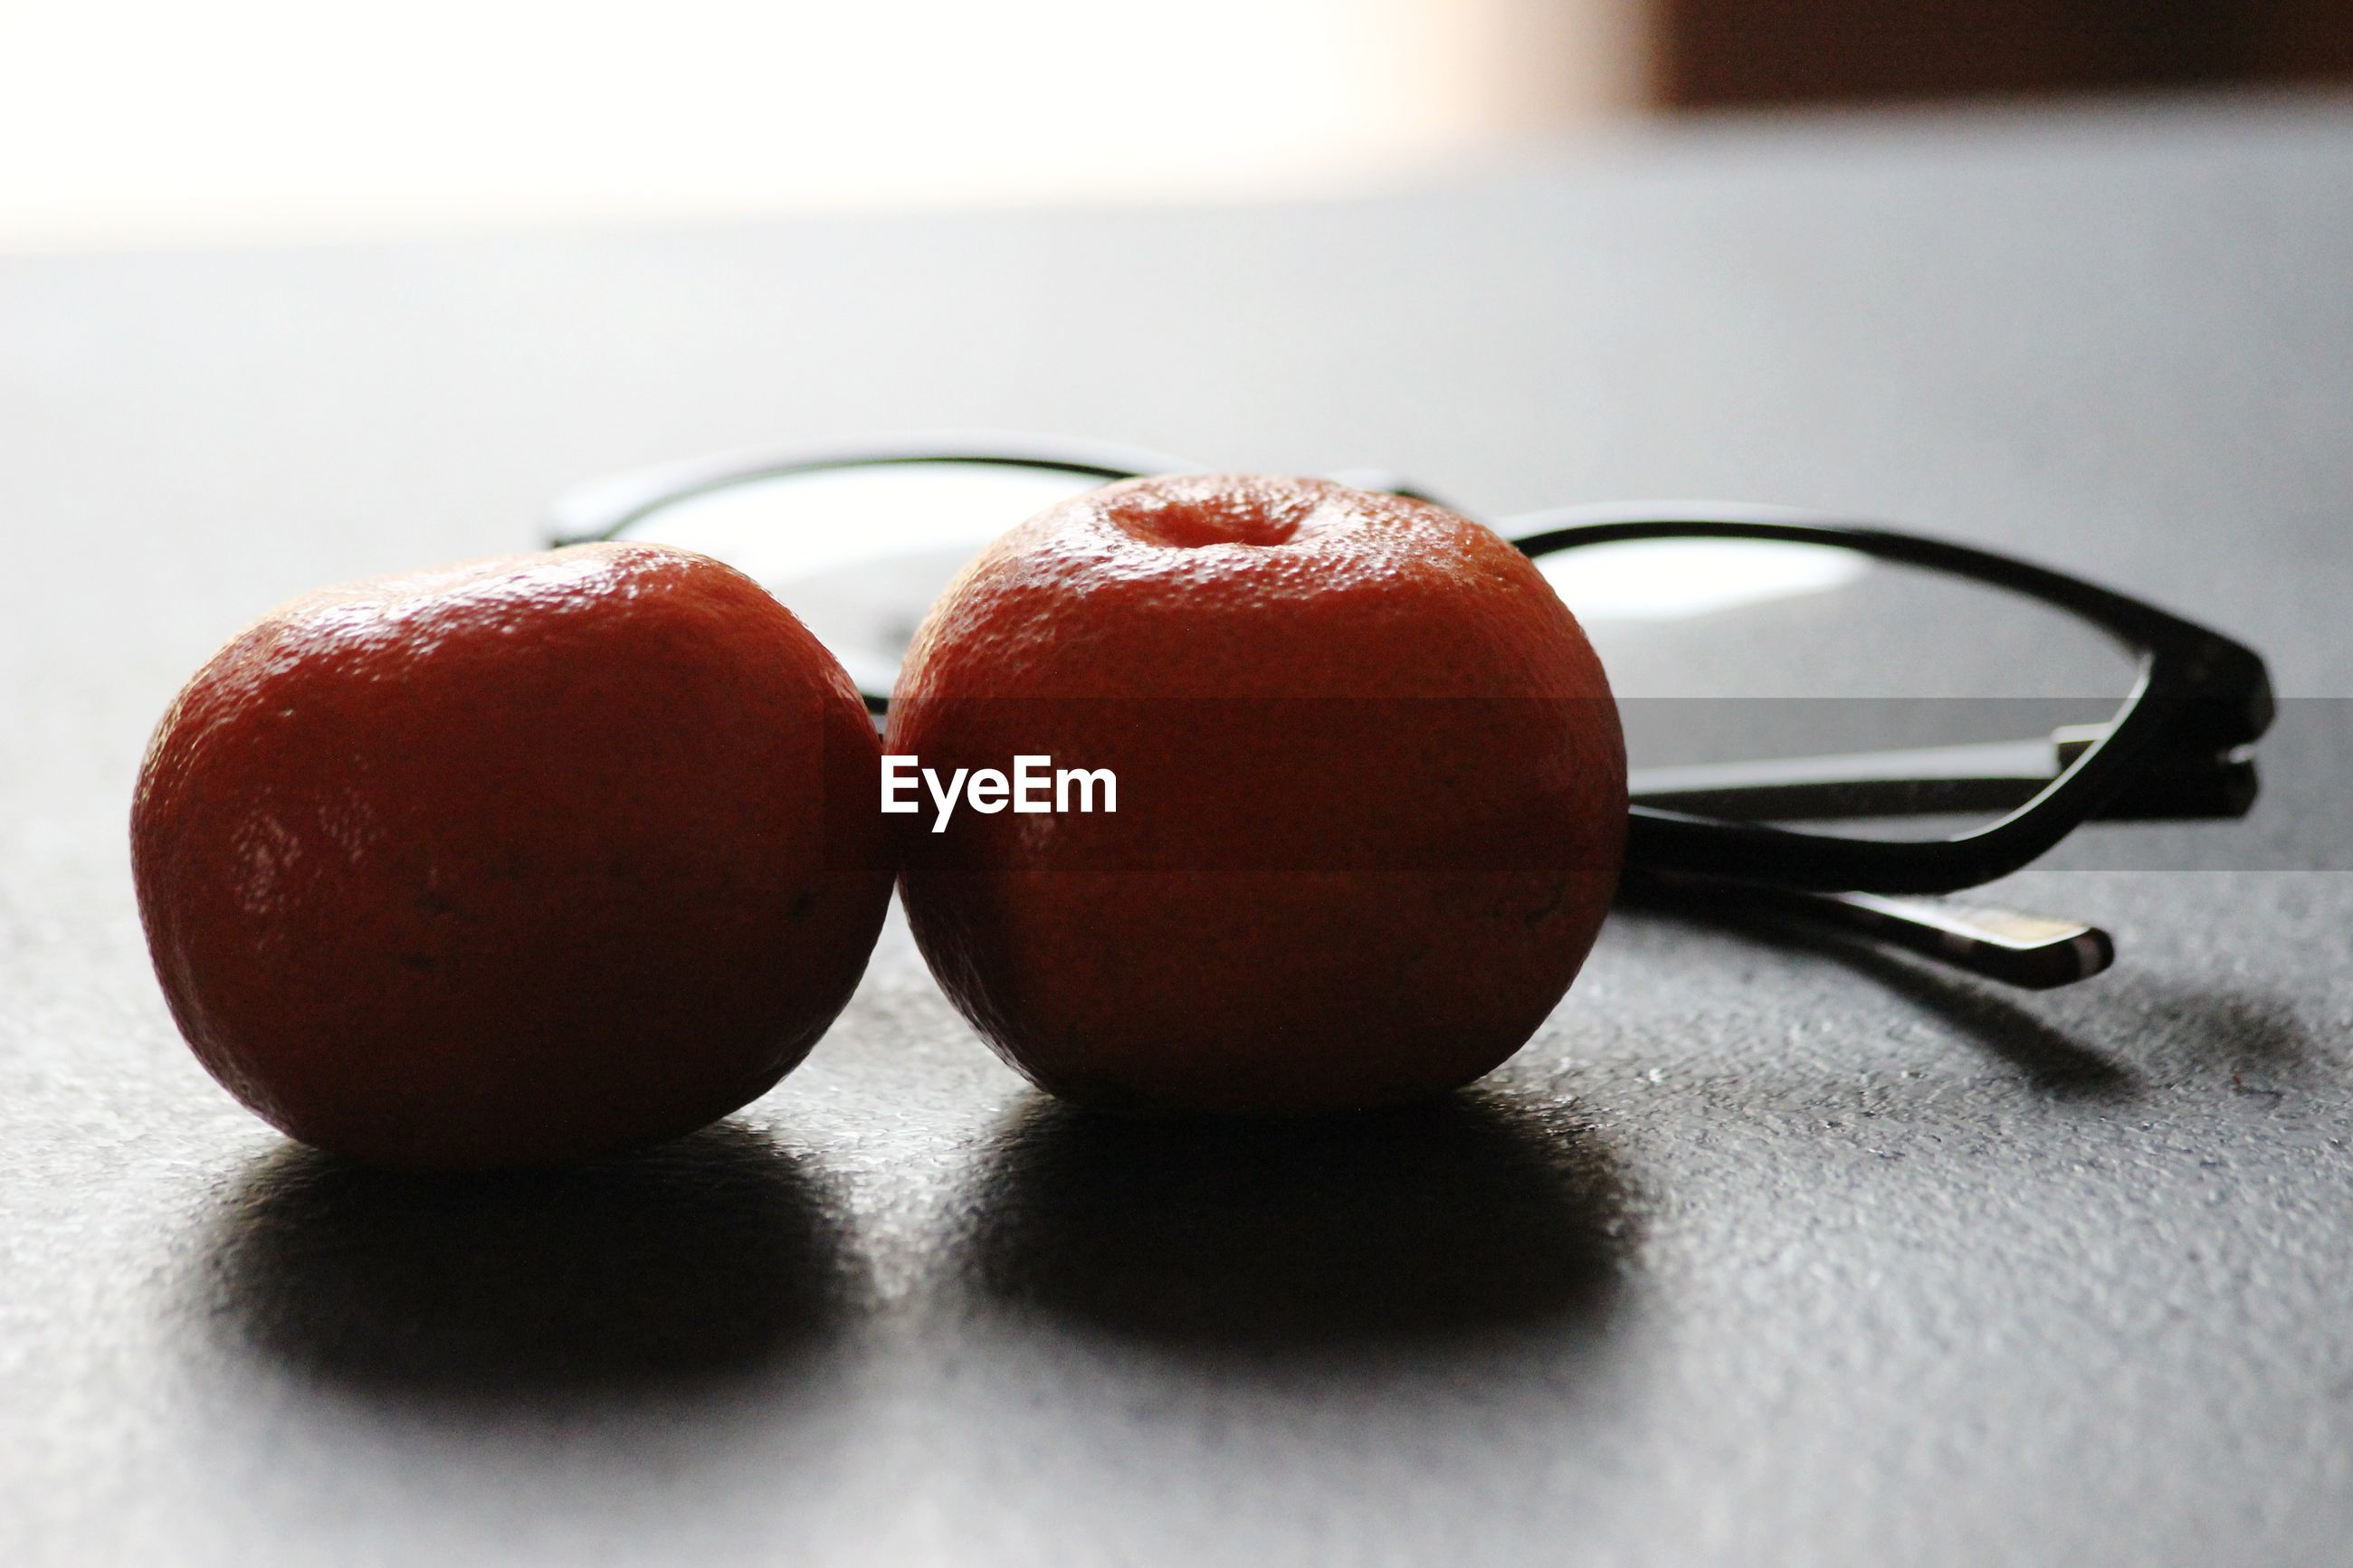 CLOSE-UP OF APPLES IN PLATE ON TABLE